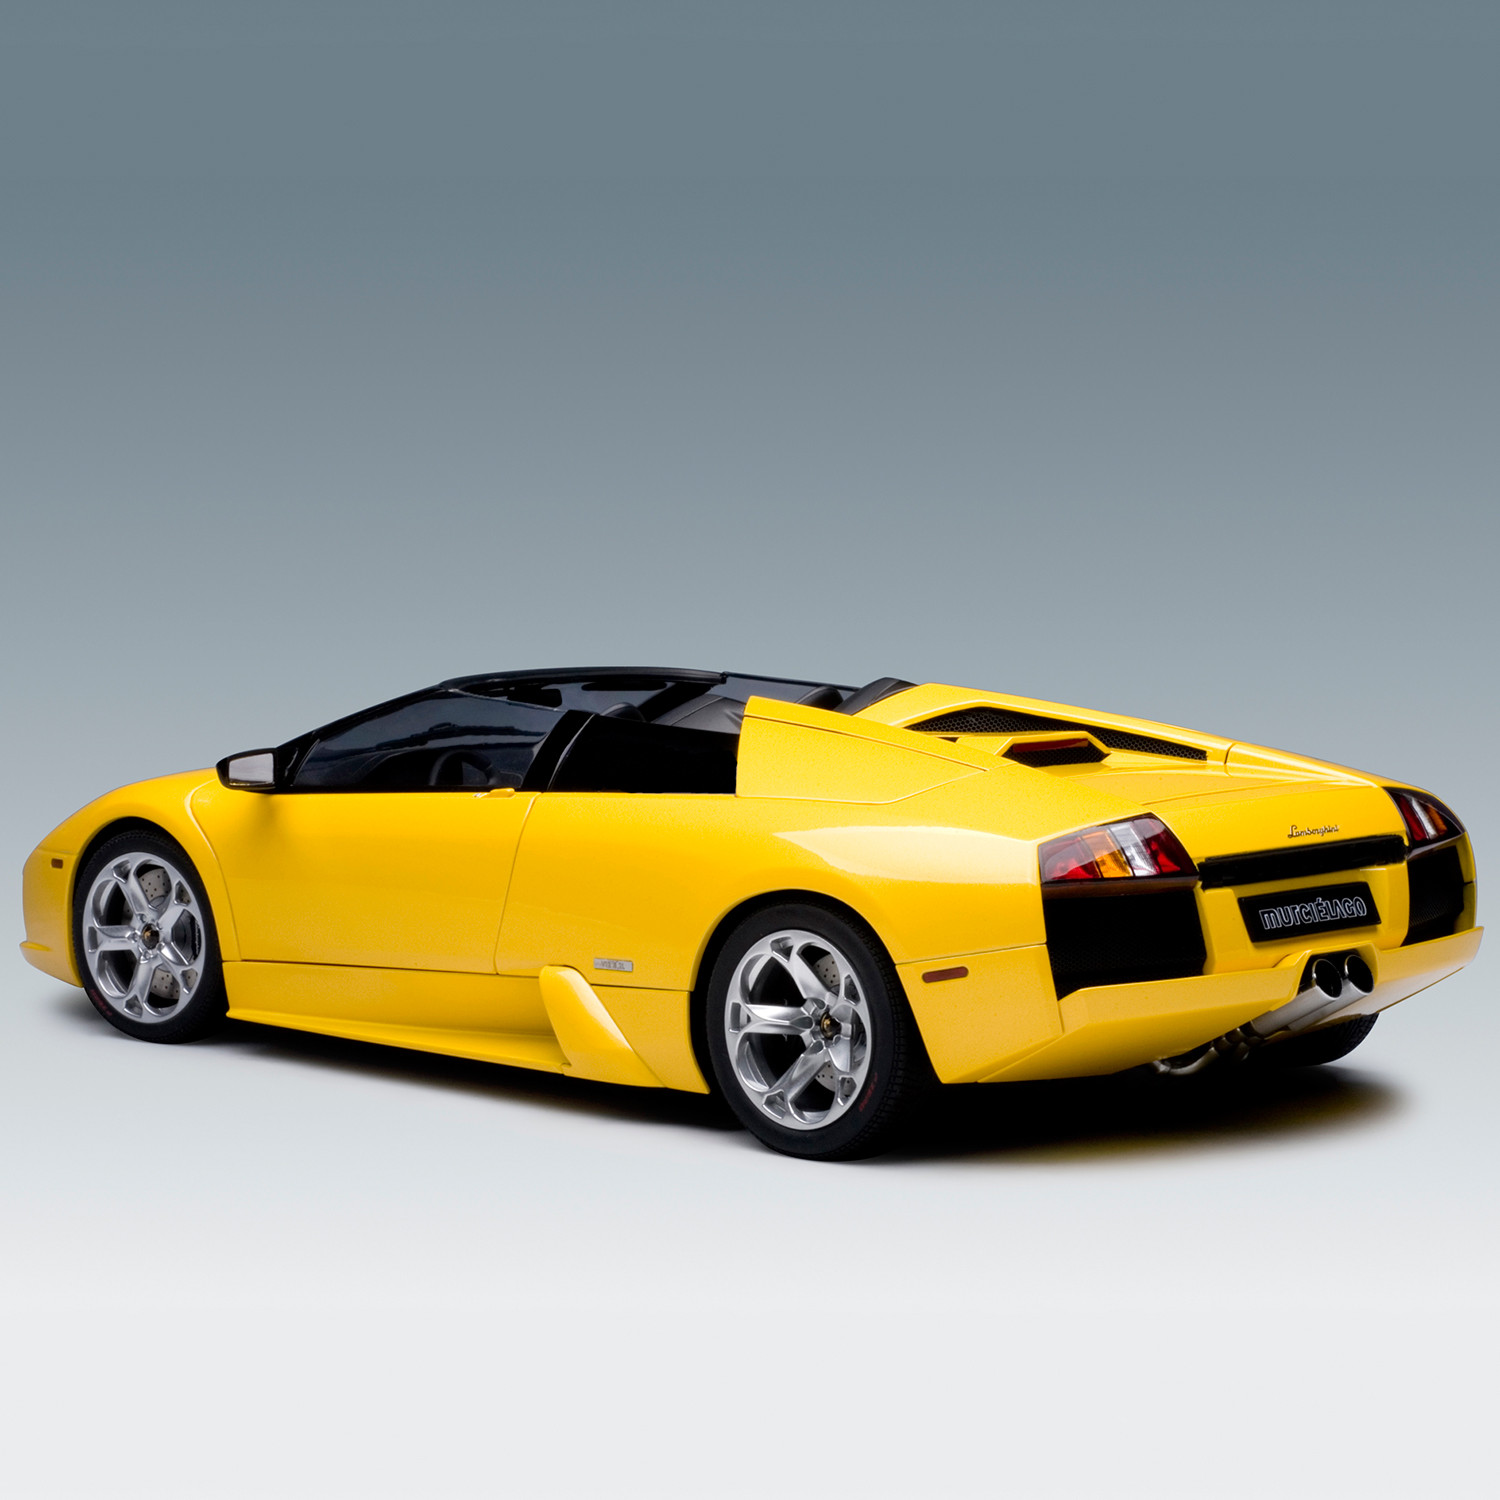 Lamborghini Murcielago: Lamborghini Murcielago Roadster // Limited Edition